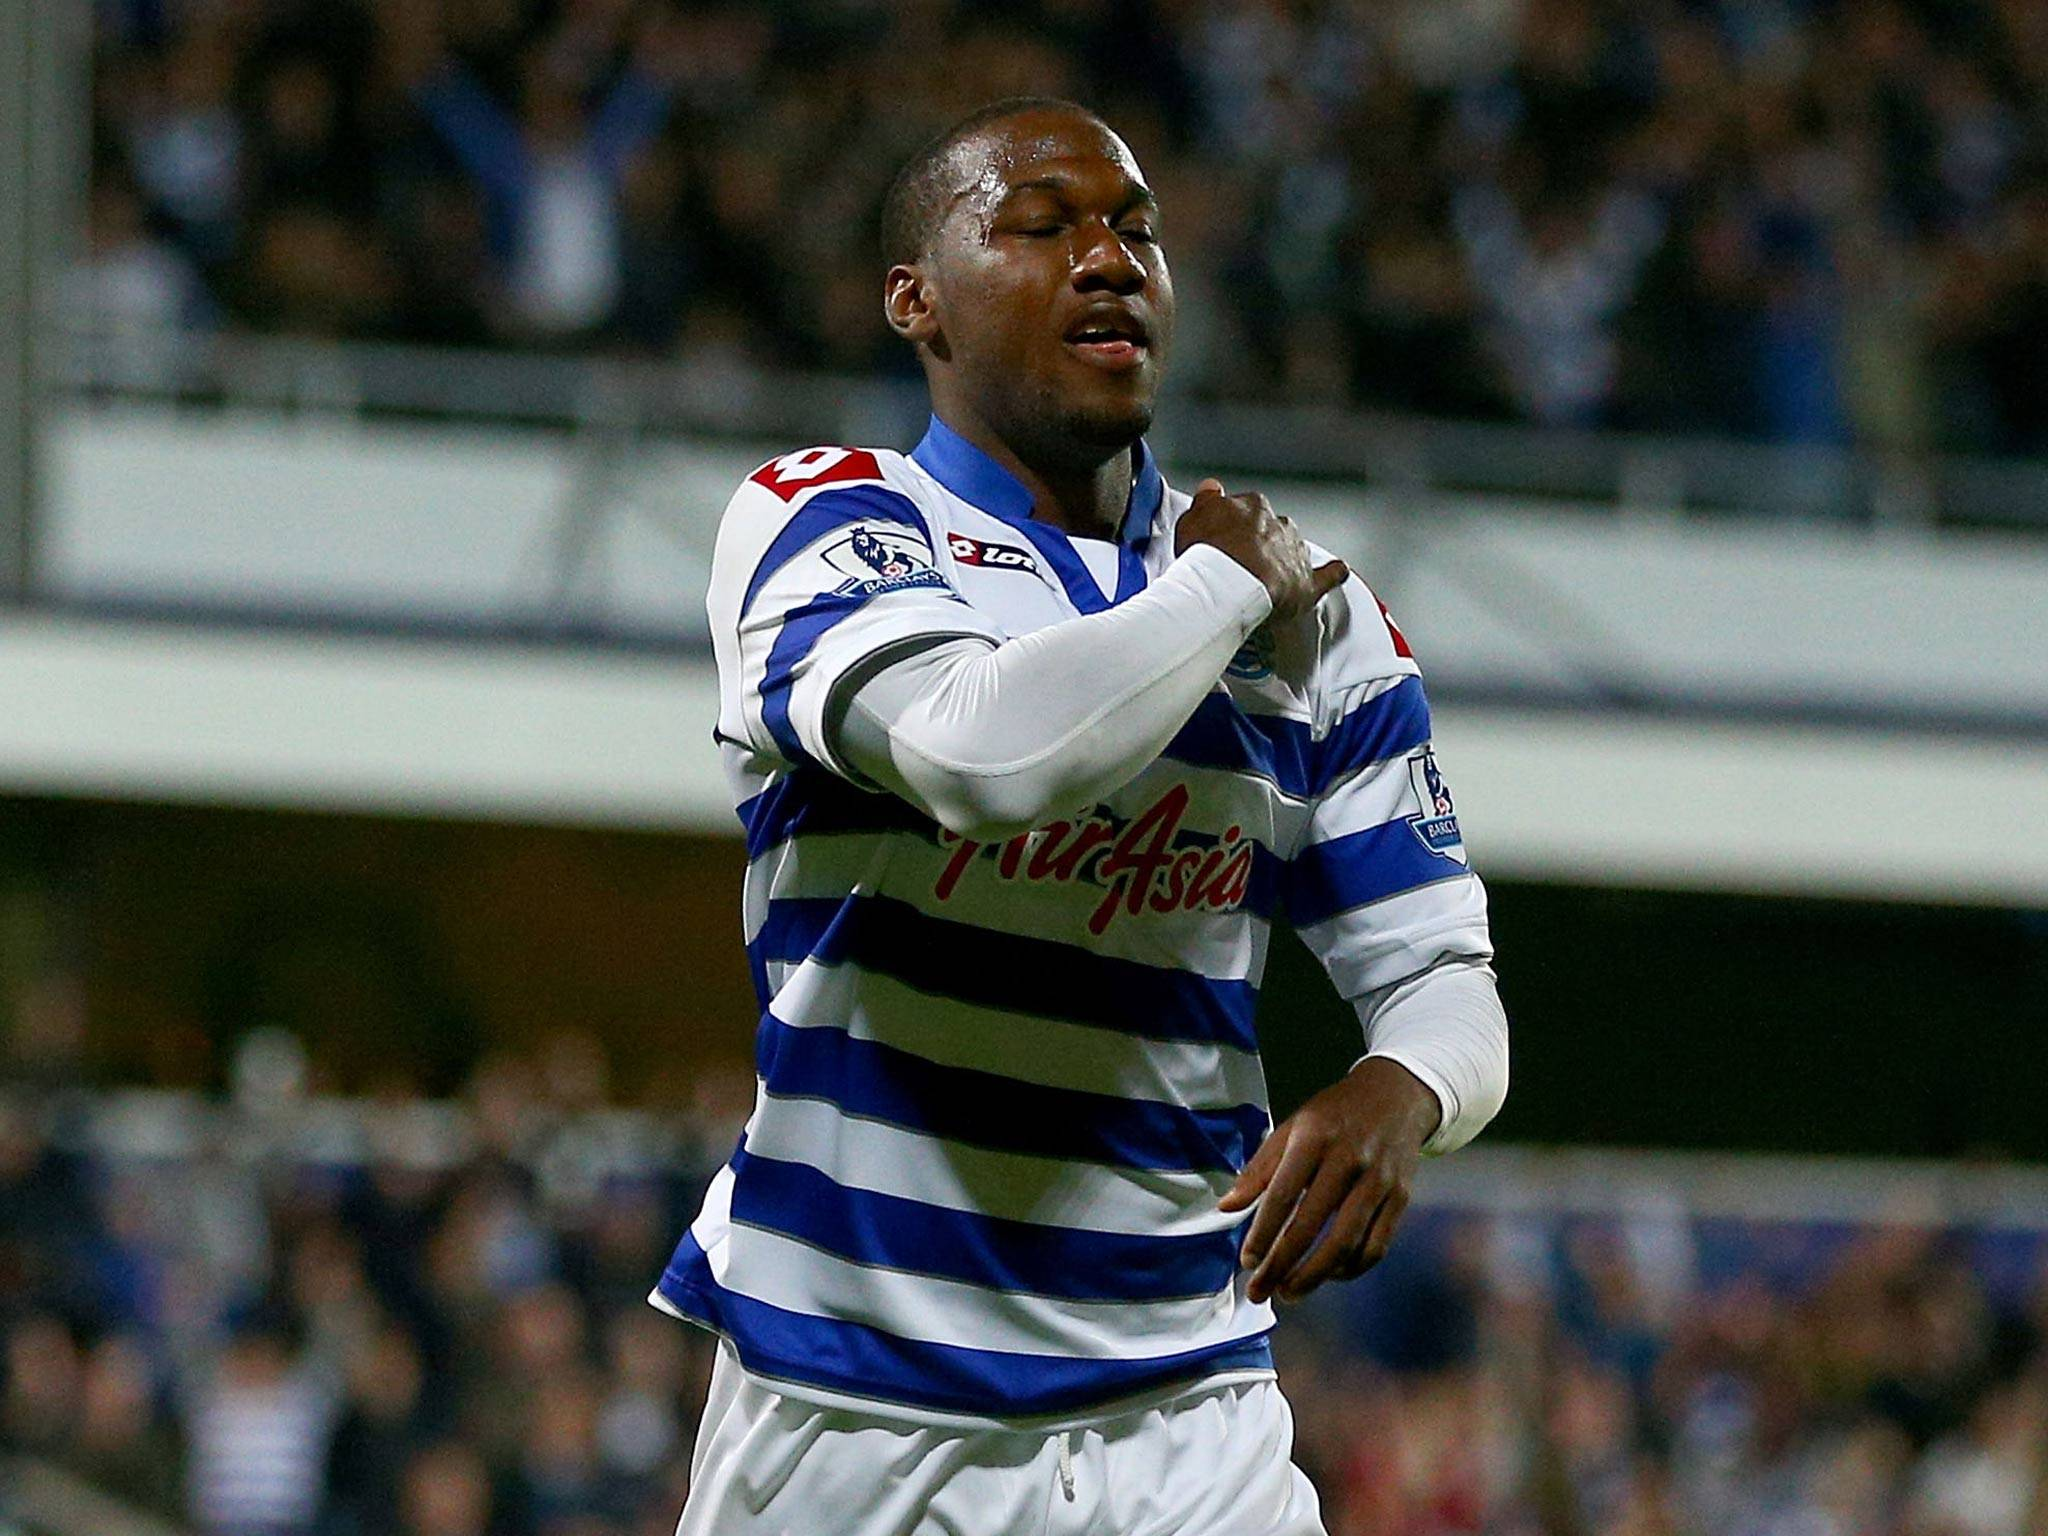 Junior-Hoilett